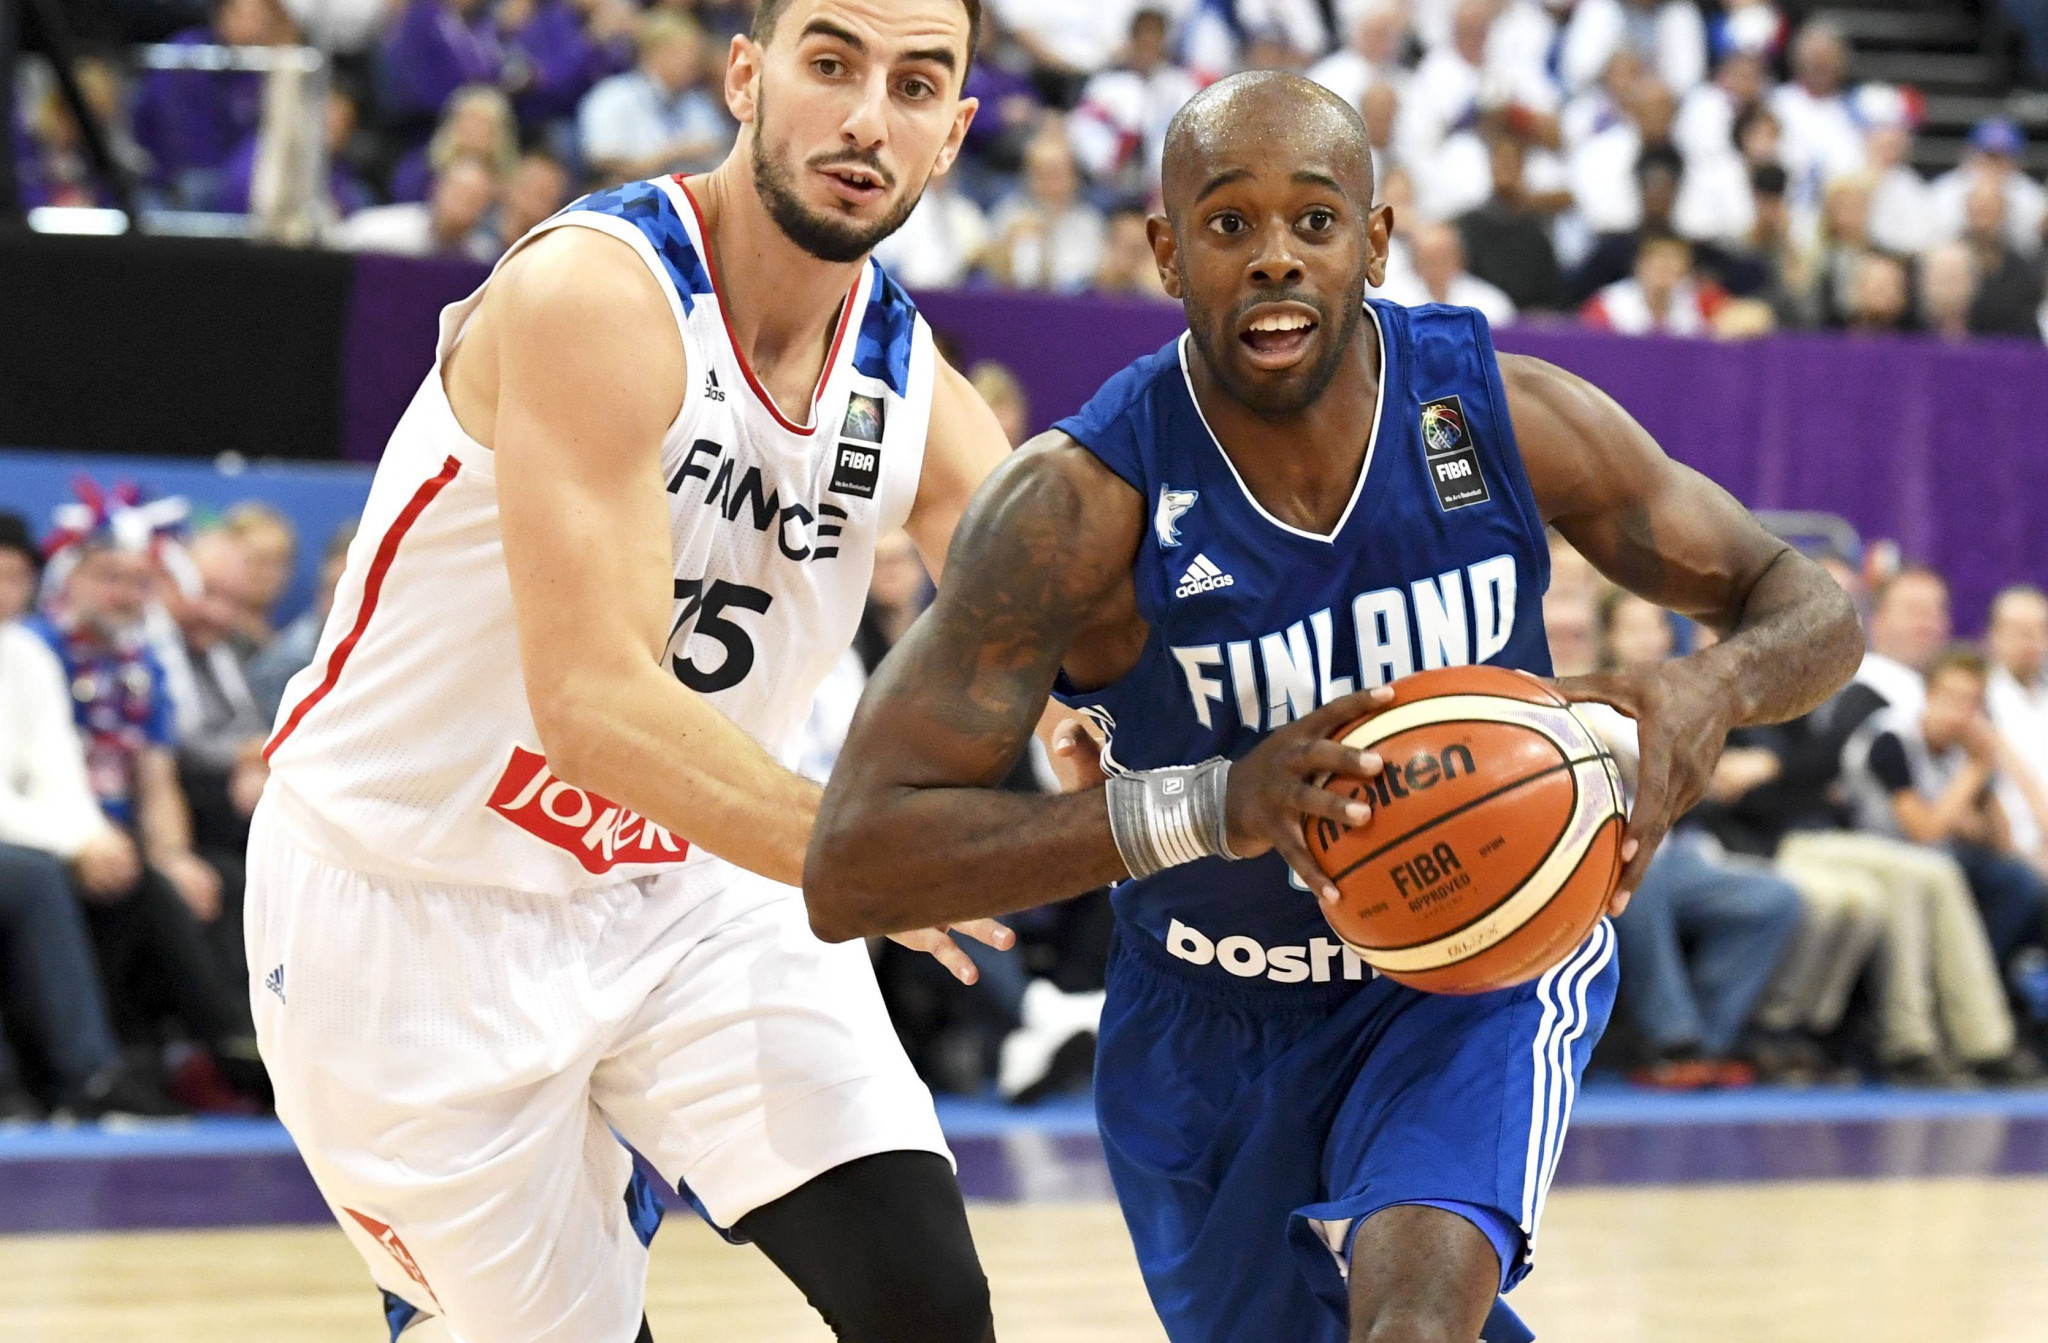 Finland shock France on day one of EuroBasket